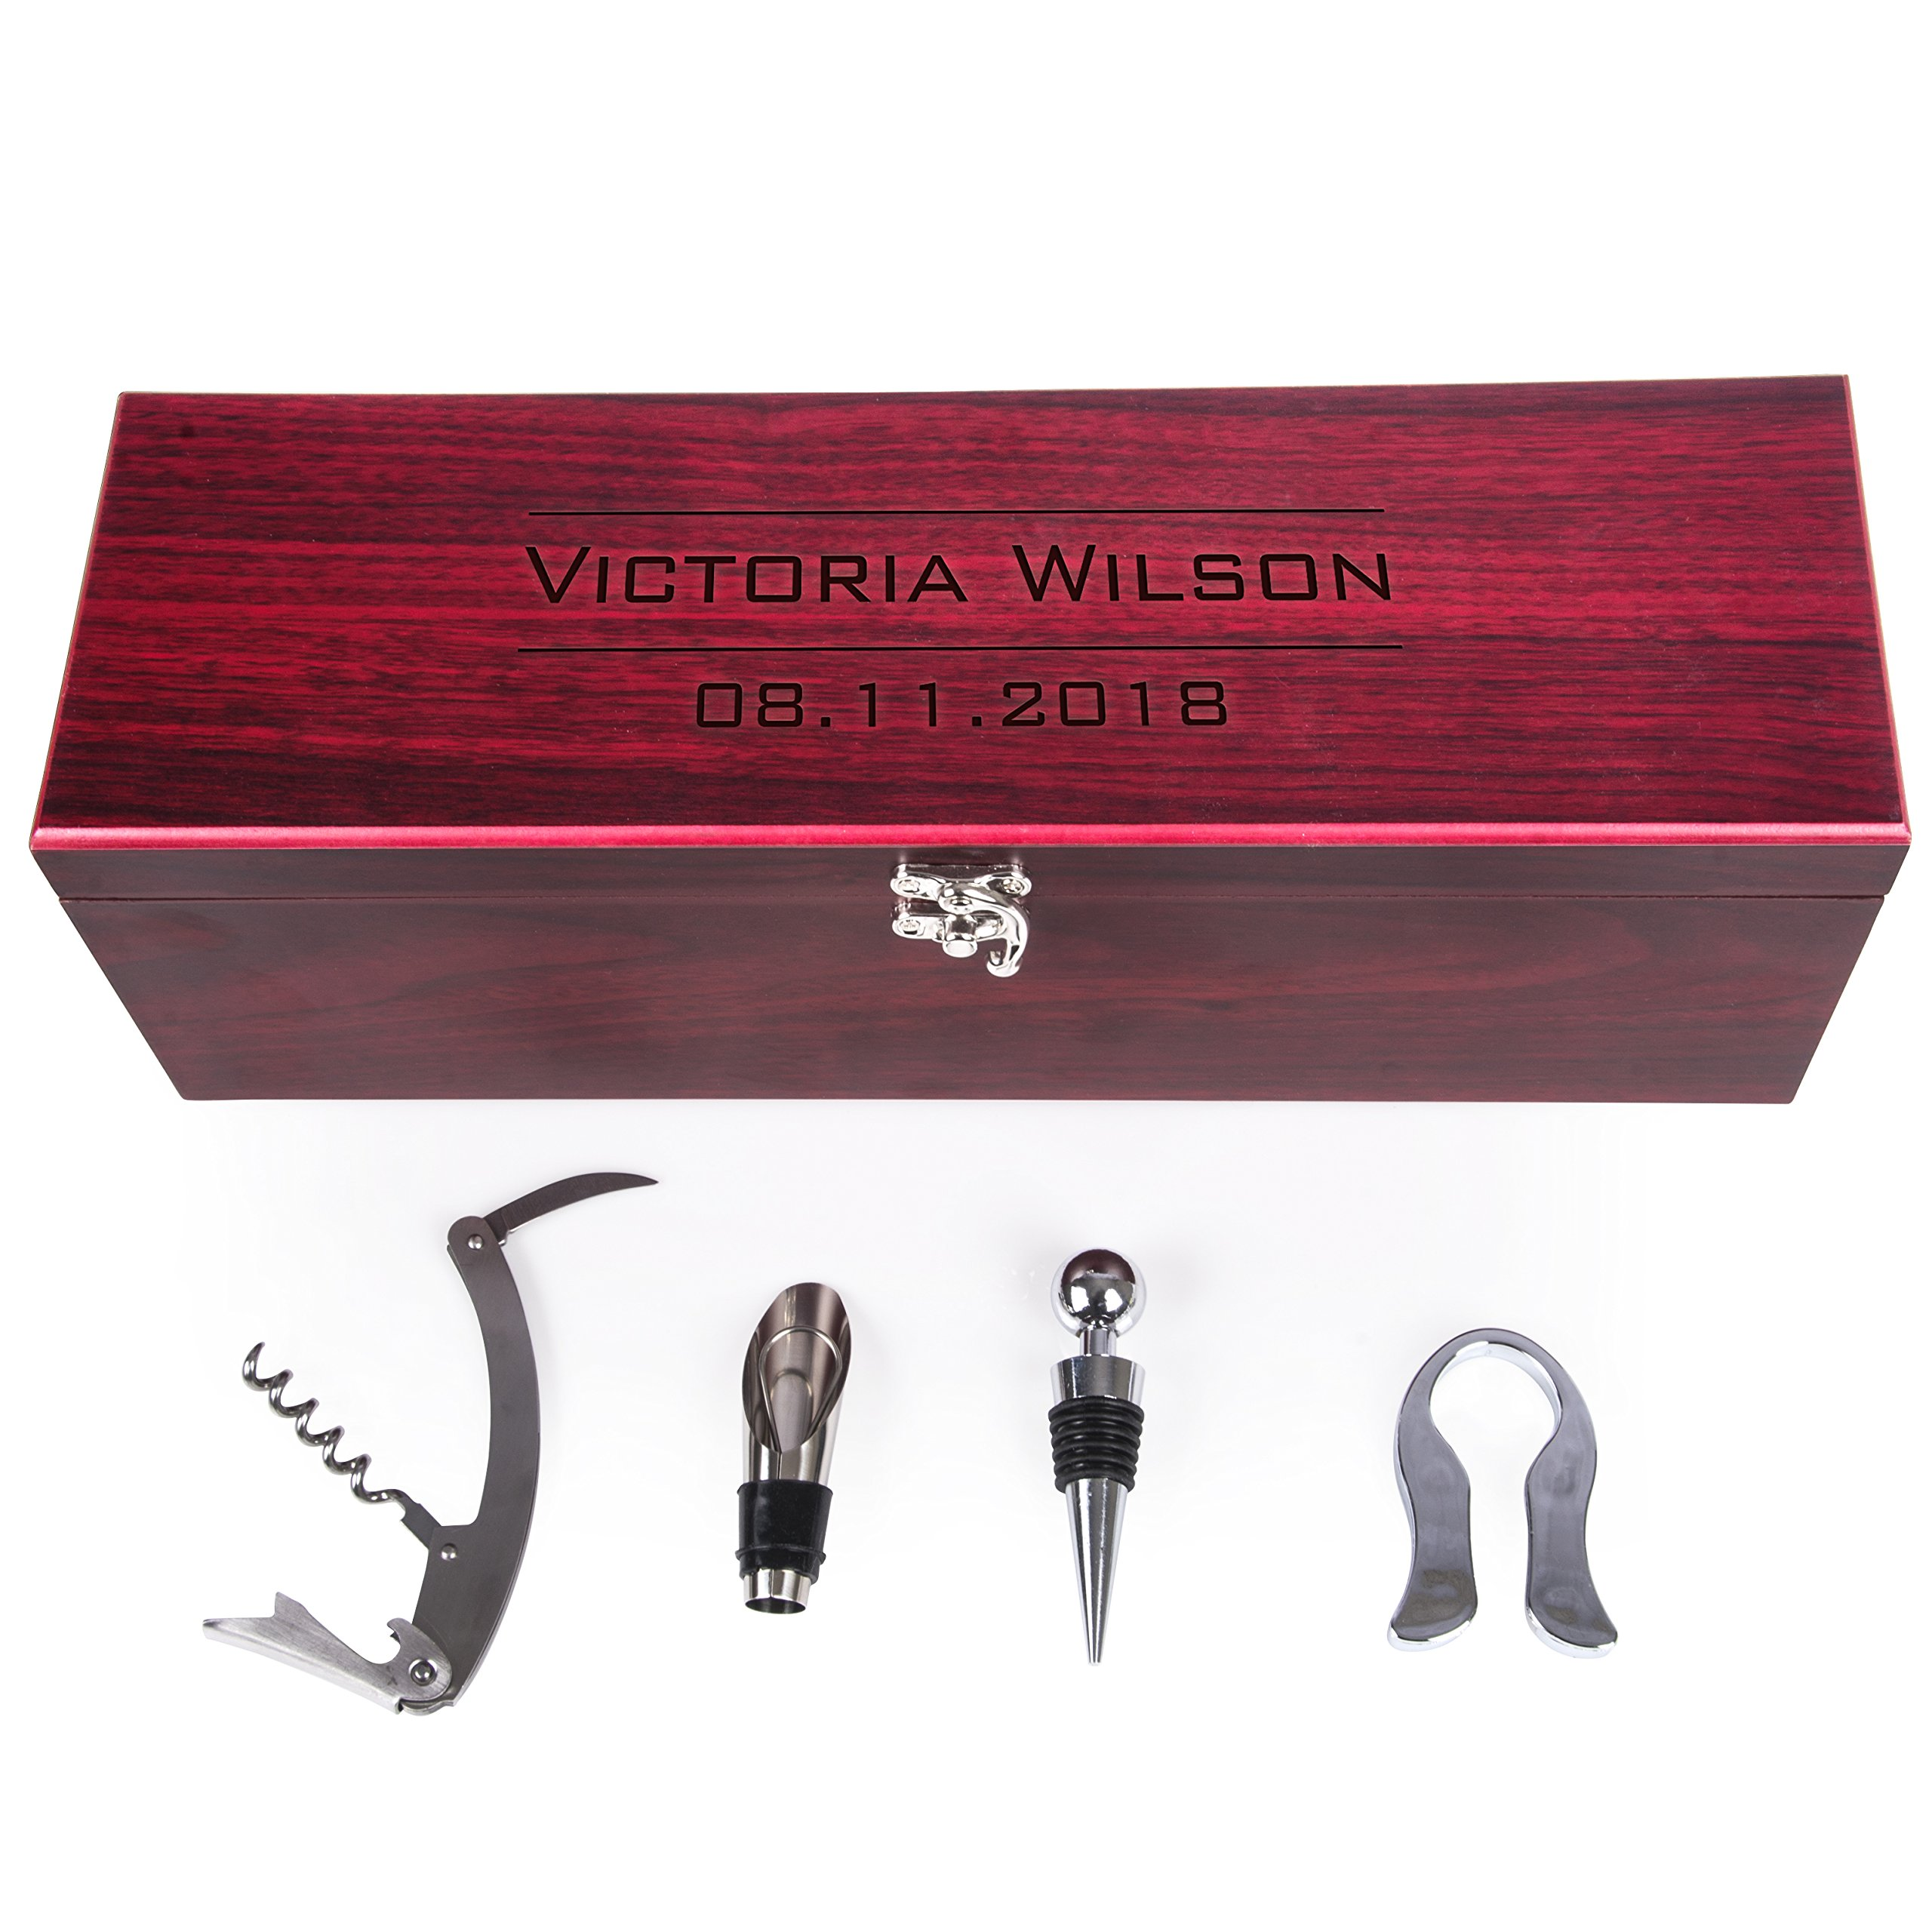 Personalized Rosewood Wine Box Gift Set with Tools - Customizable with Name/Text & Date | Housewarming Home Kitchen Gift for Wine Enthusiasts | Wedding Bridal Shower Anniversary